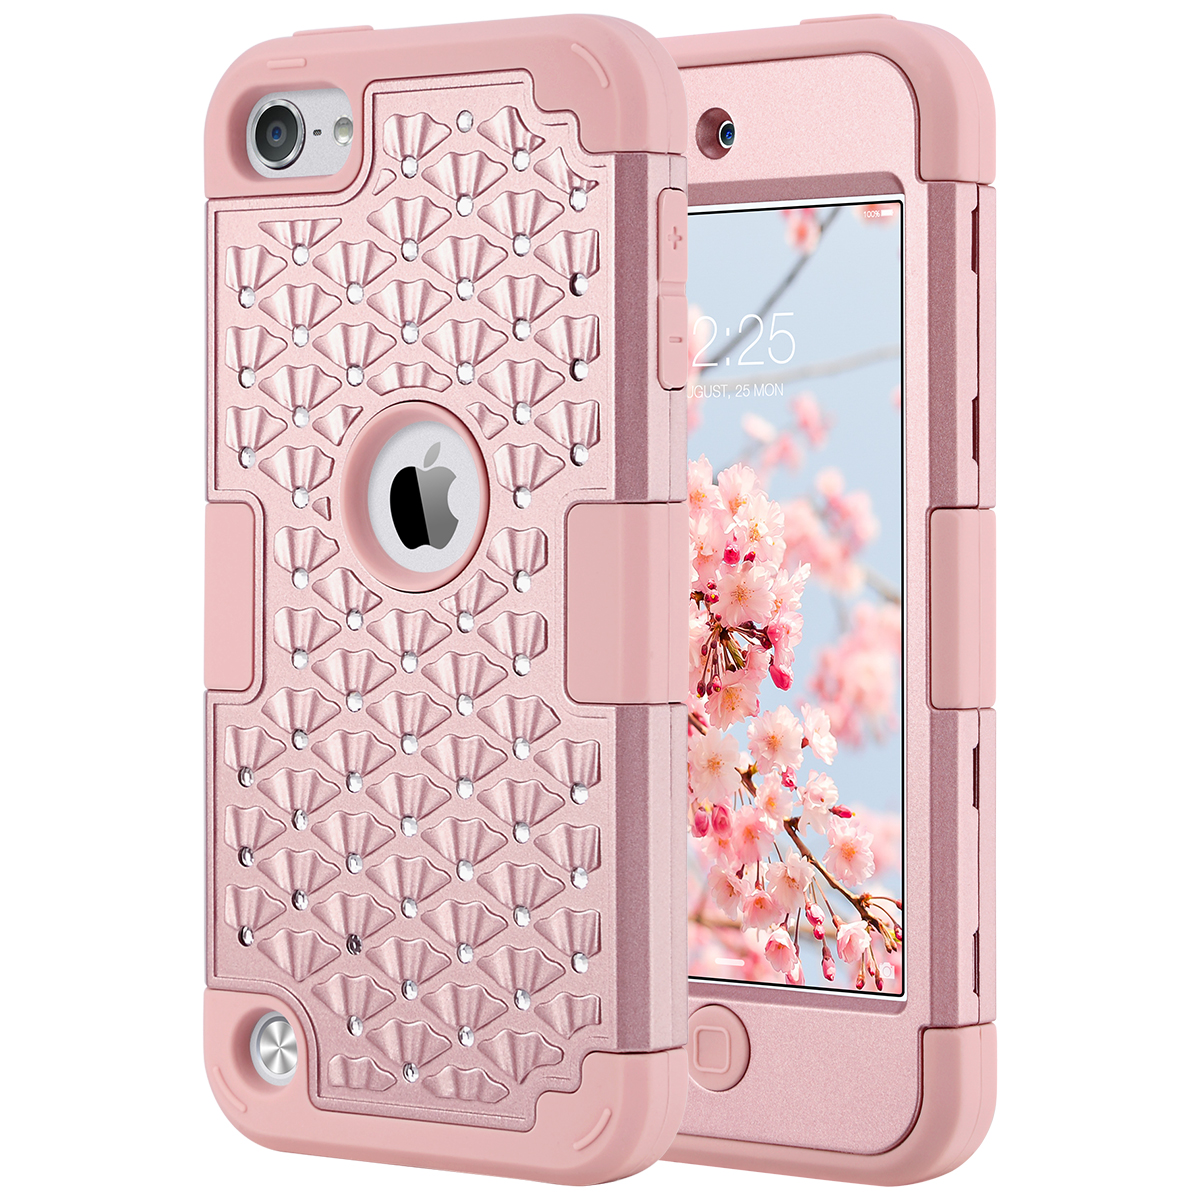 Hybrid-Hard-Protective-Silicon-TPU-Case-for-Apple-iPod-Touch-5-6th-Generation thumbnail 128